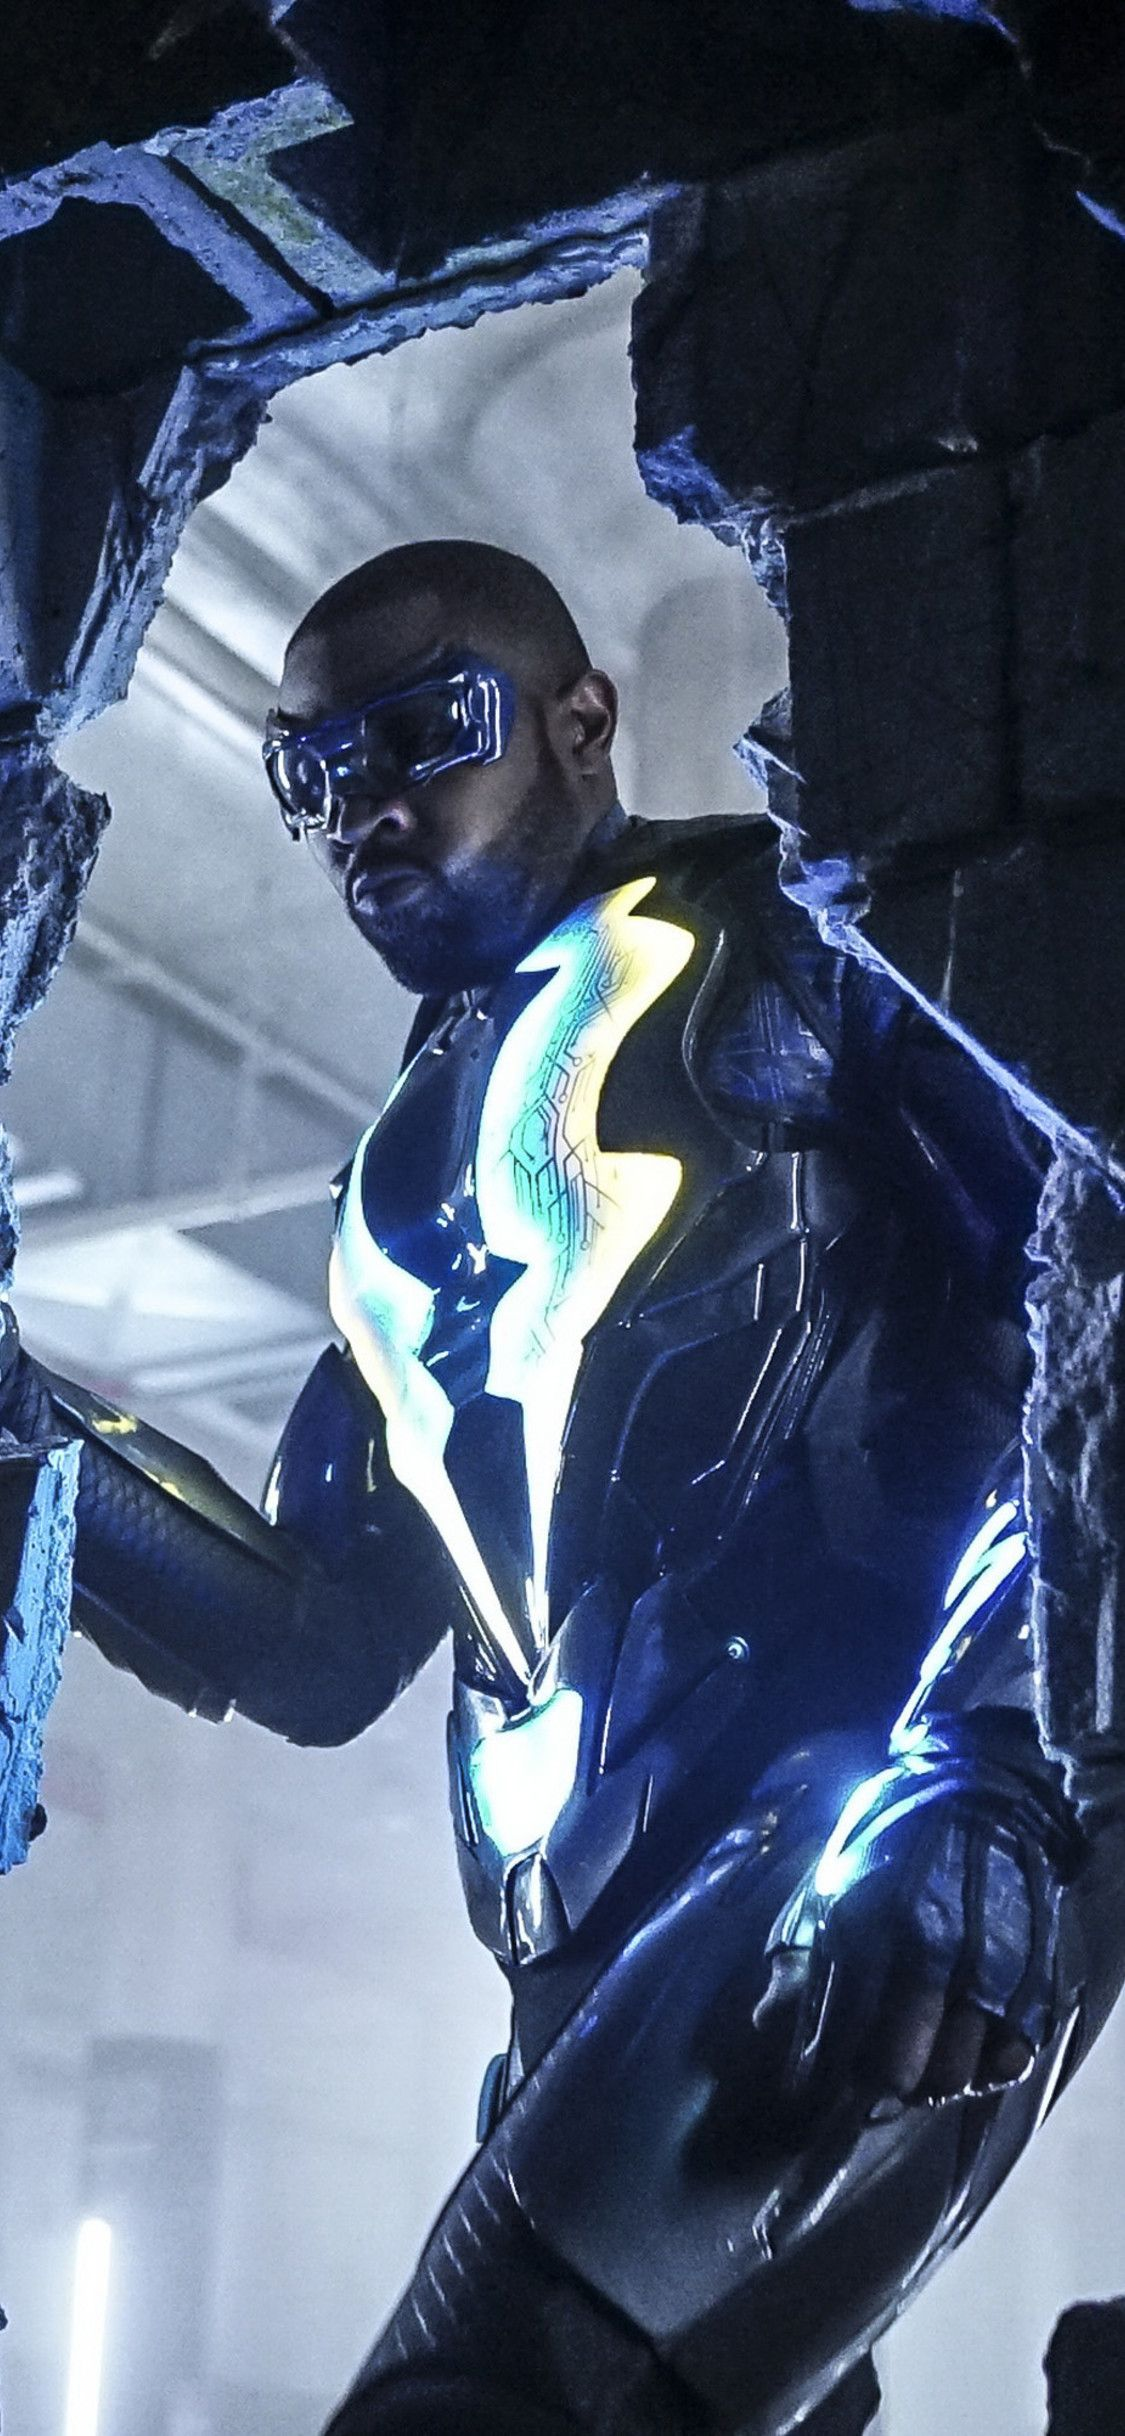 1125x2436 Cress Williams As Black Lightning Iphone Xs Iphone 10 Iphone X Hd 4k Wallpapers Images Backgrounds Photos Black Lightning Lightning Cress Williams